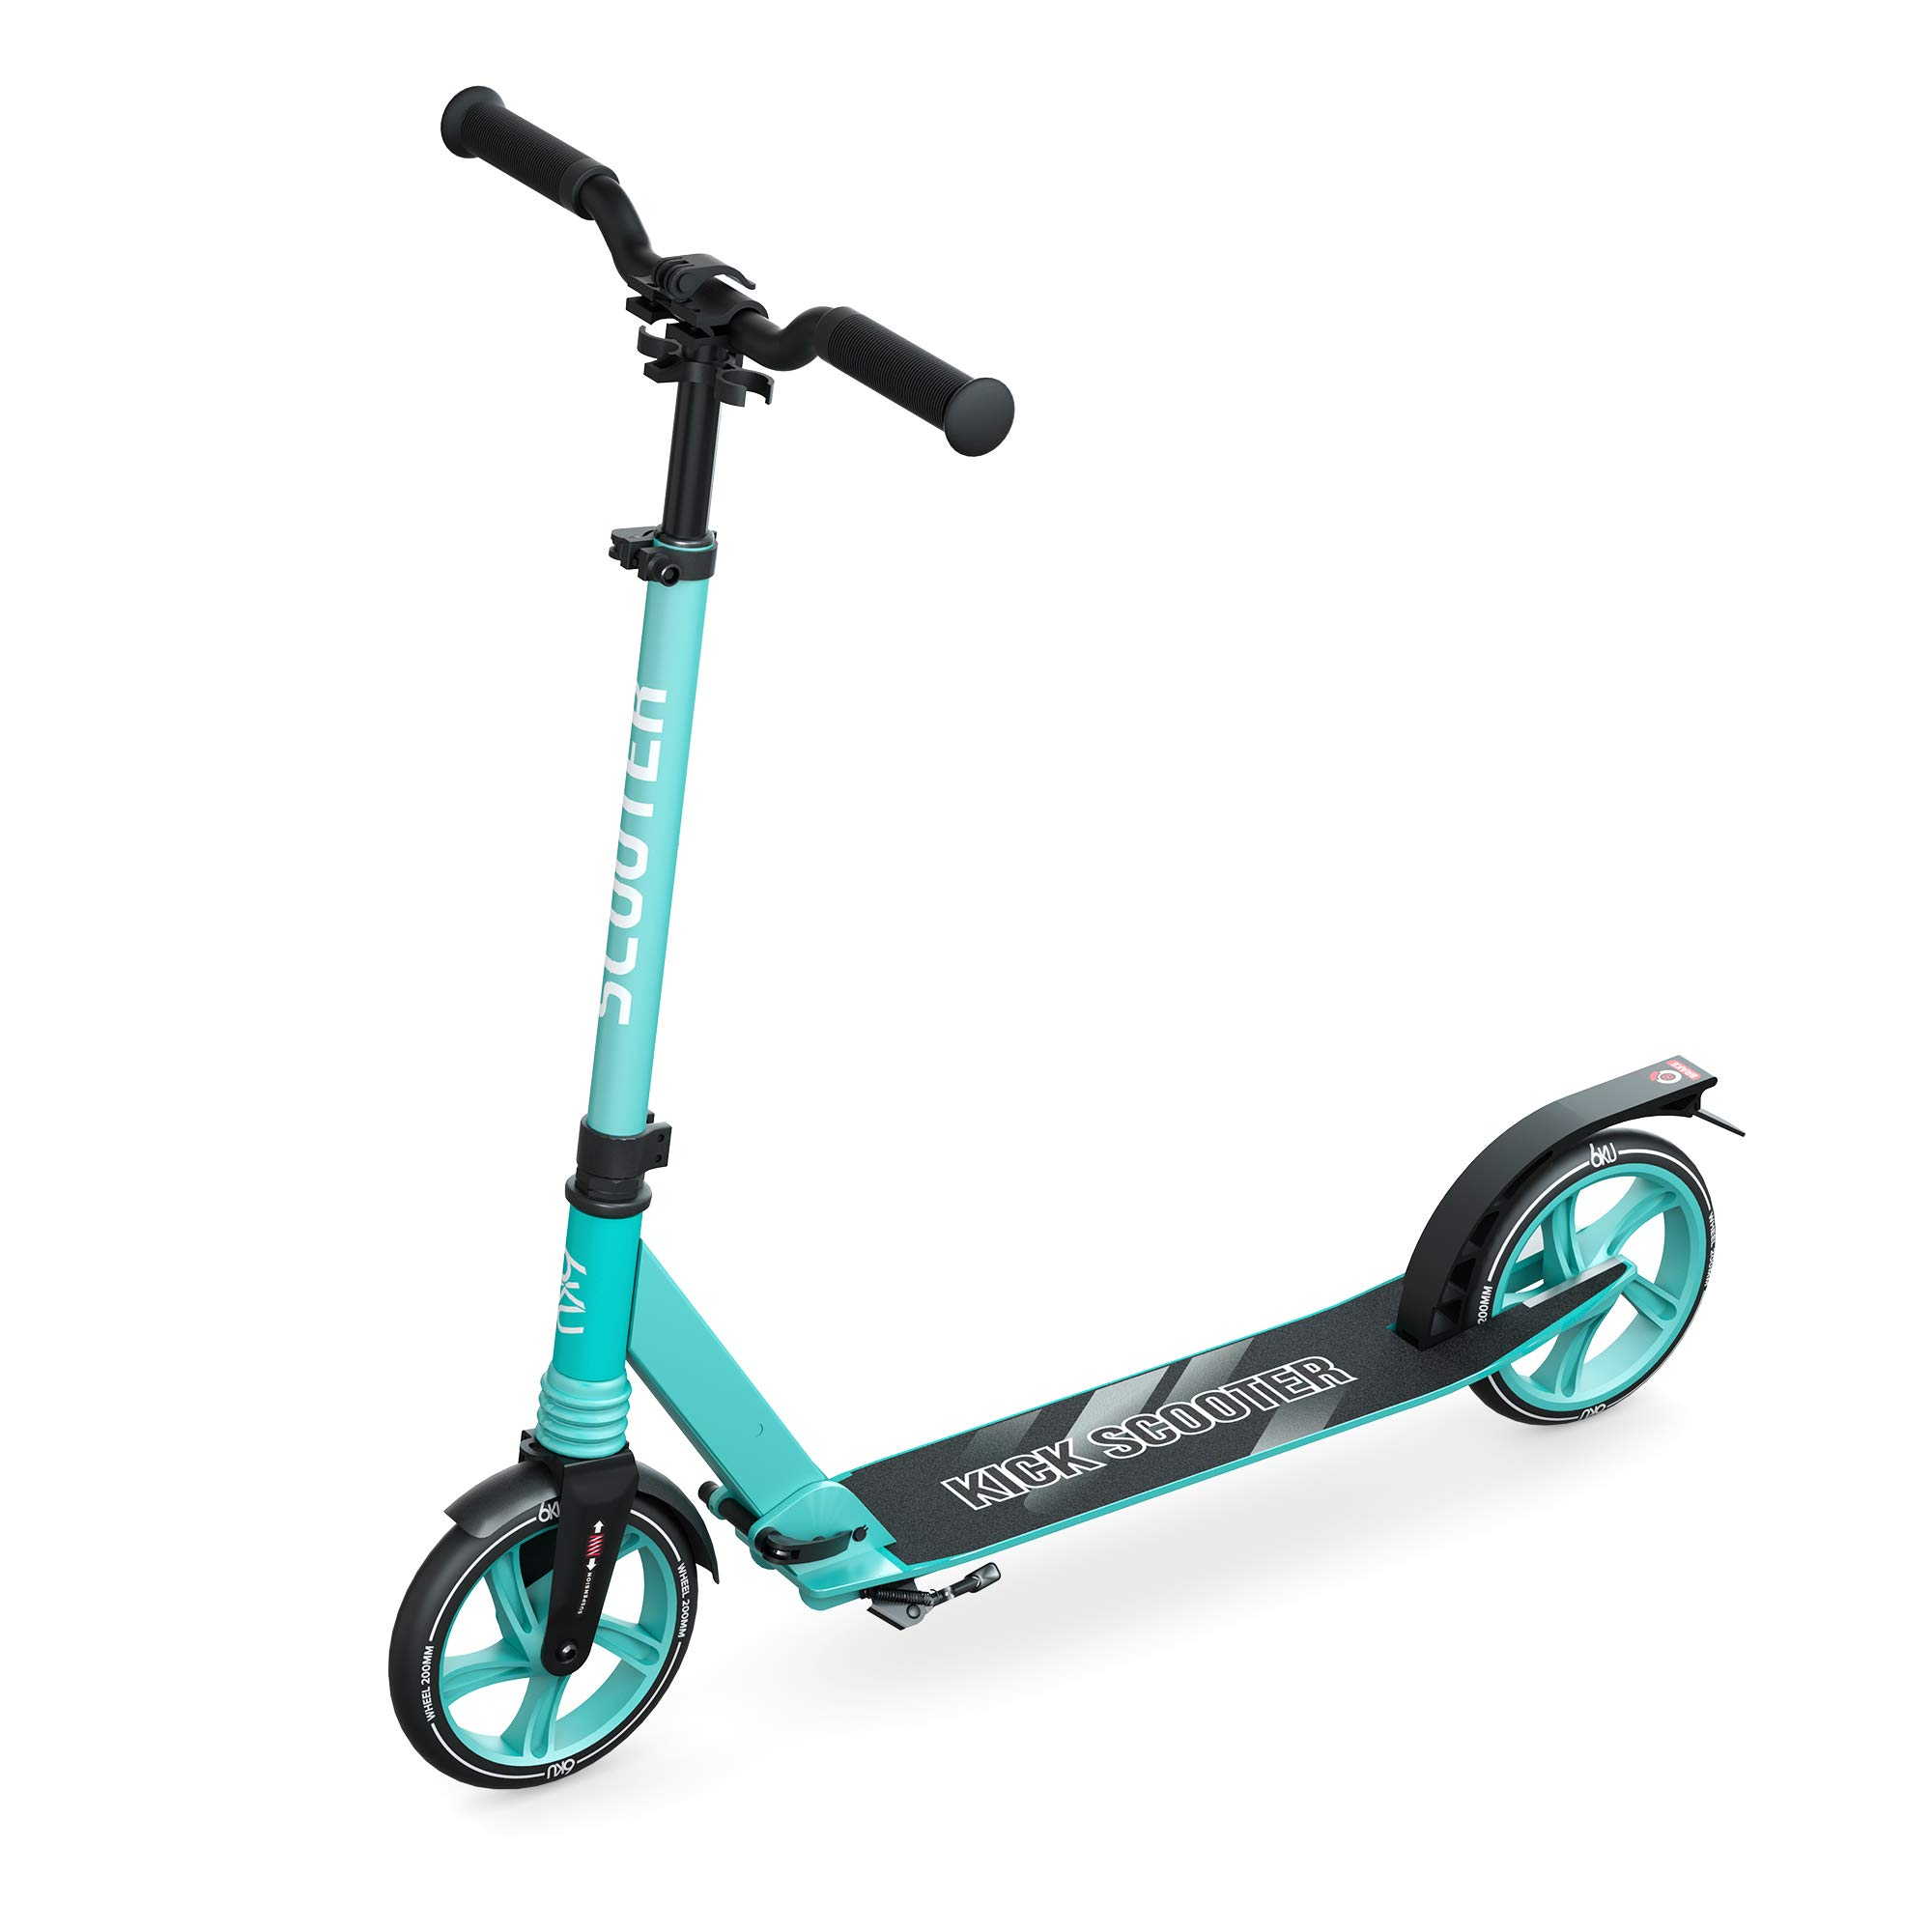 6KU Scooter for Kids 8 Years and up, Scooter for Adults with Big Wheels, Suspension Shoulder Strap Rear Fender Brake, Folding Lightweight Height Adjustable,Gift Scooter for Kids Ages 6-12